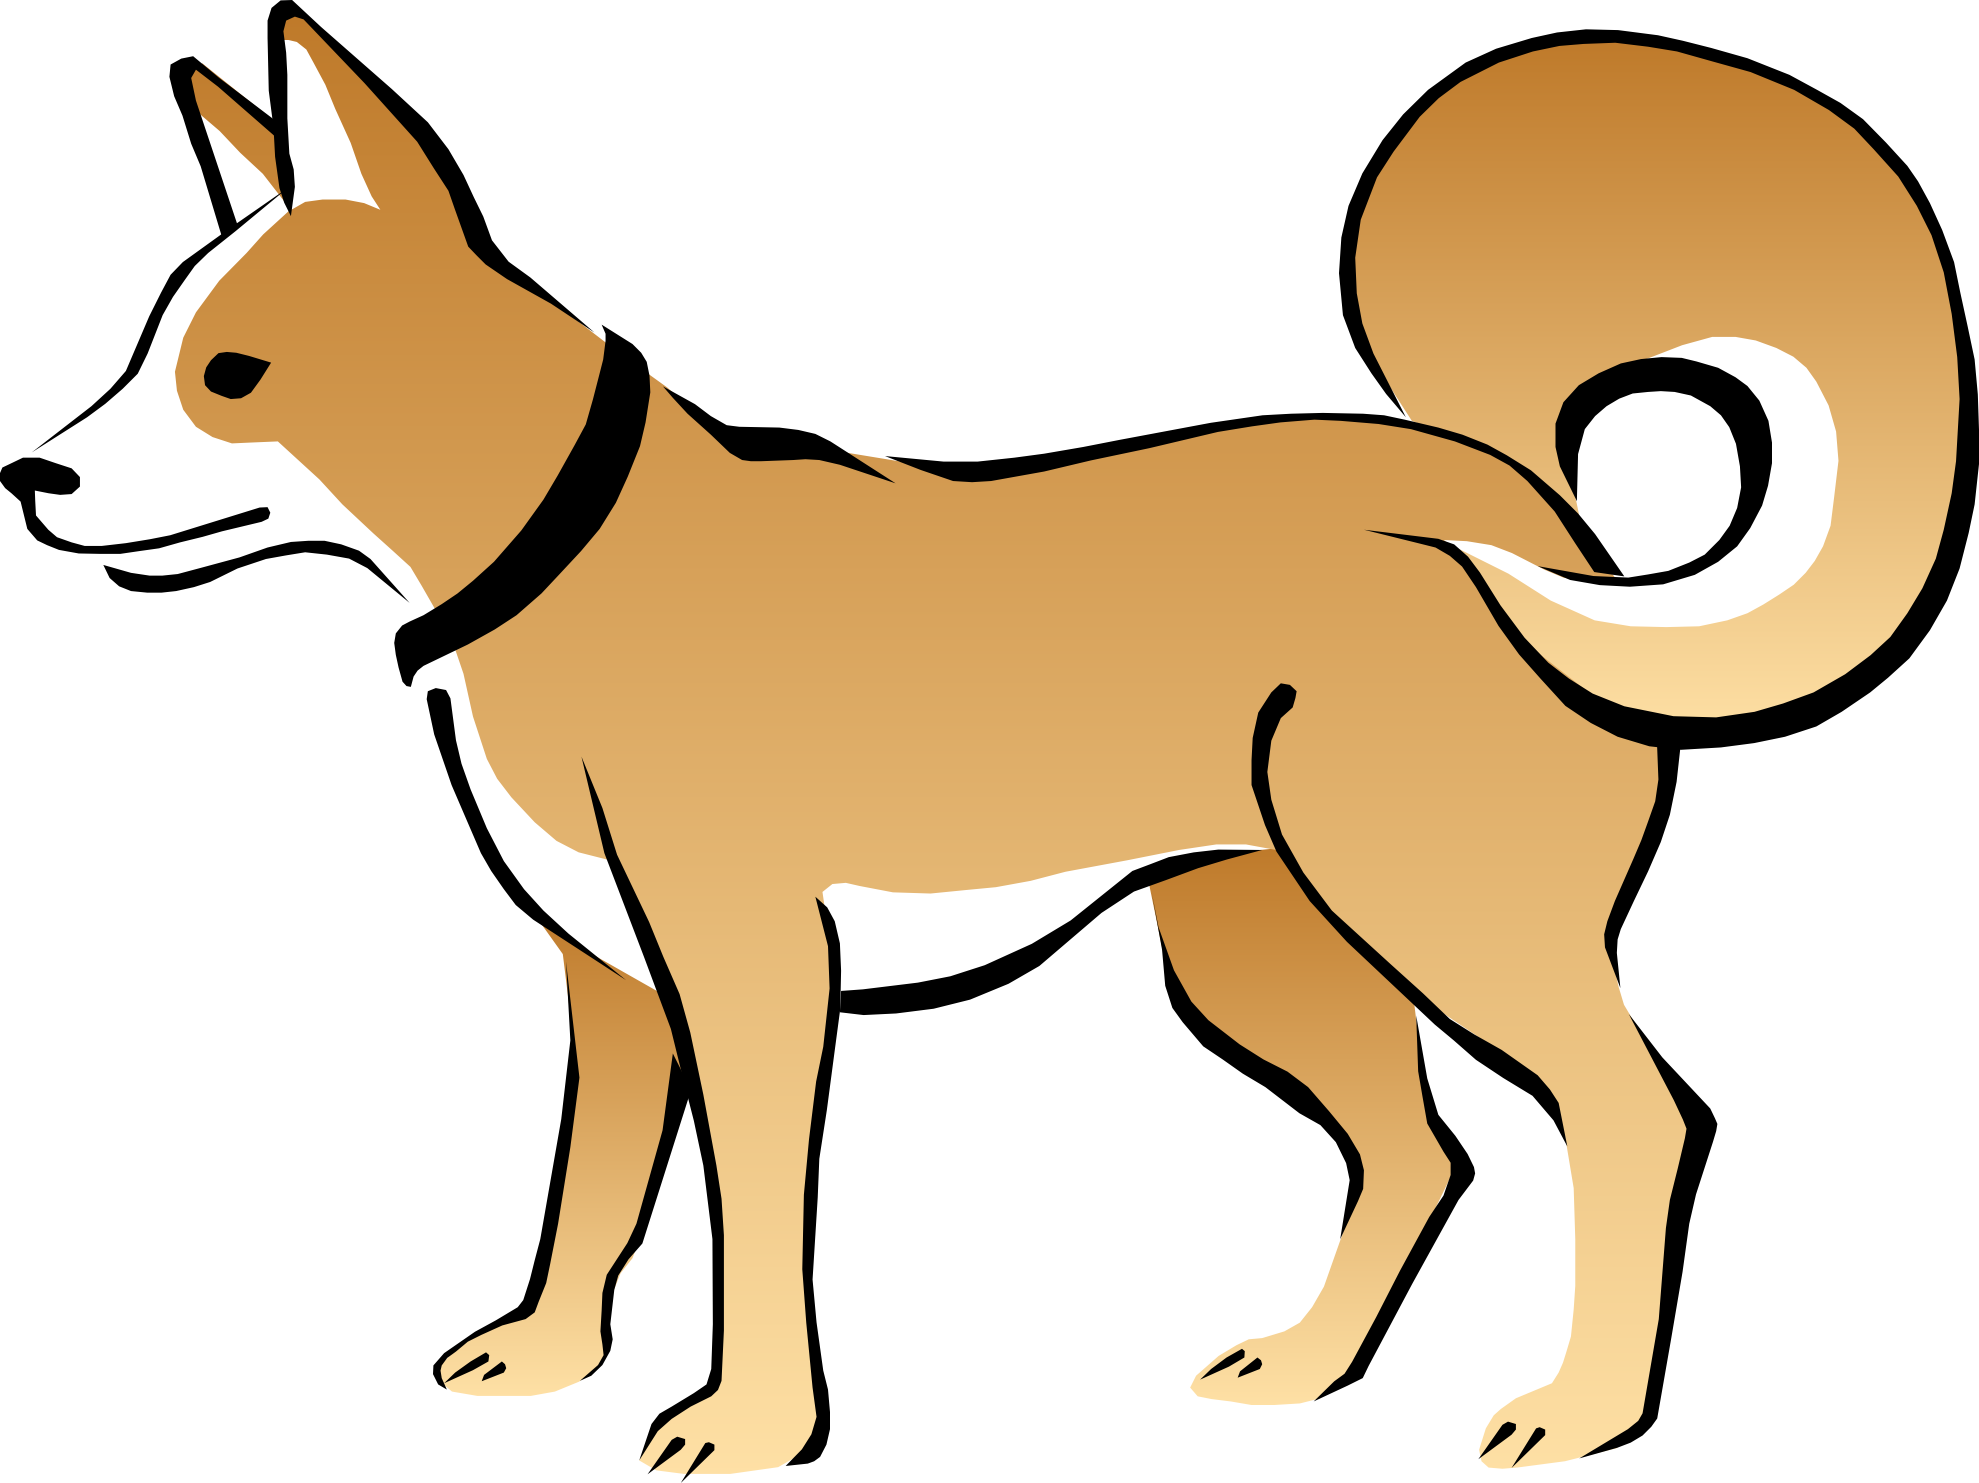 Dog clip art dog image 3 - Clipart Of A Dog